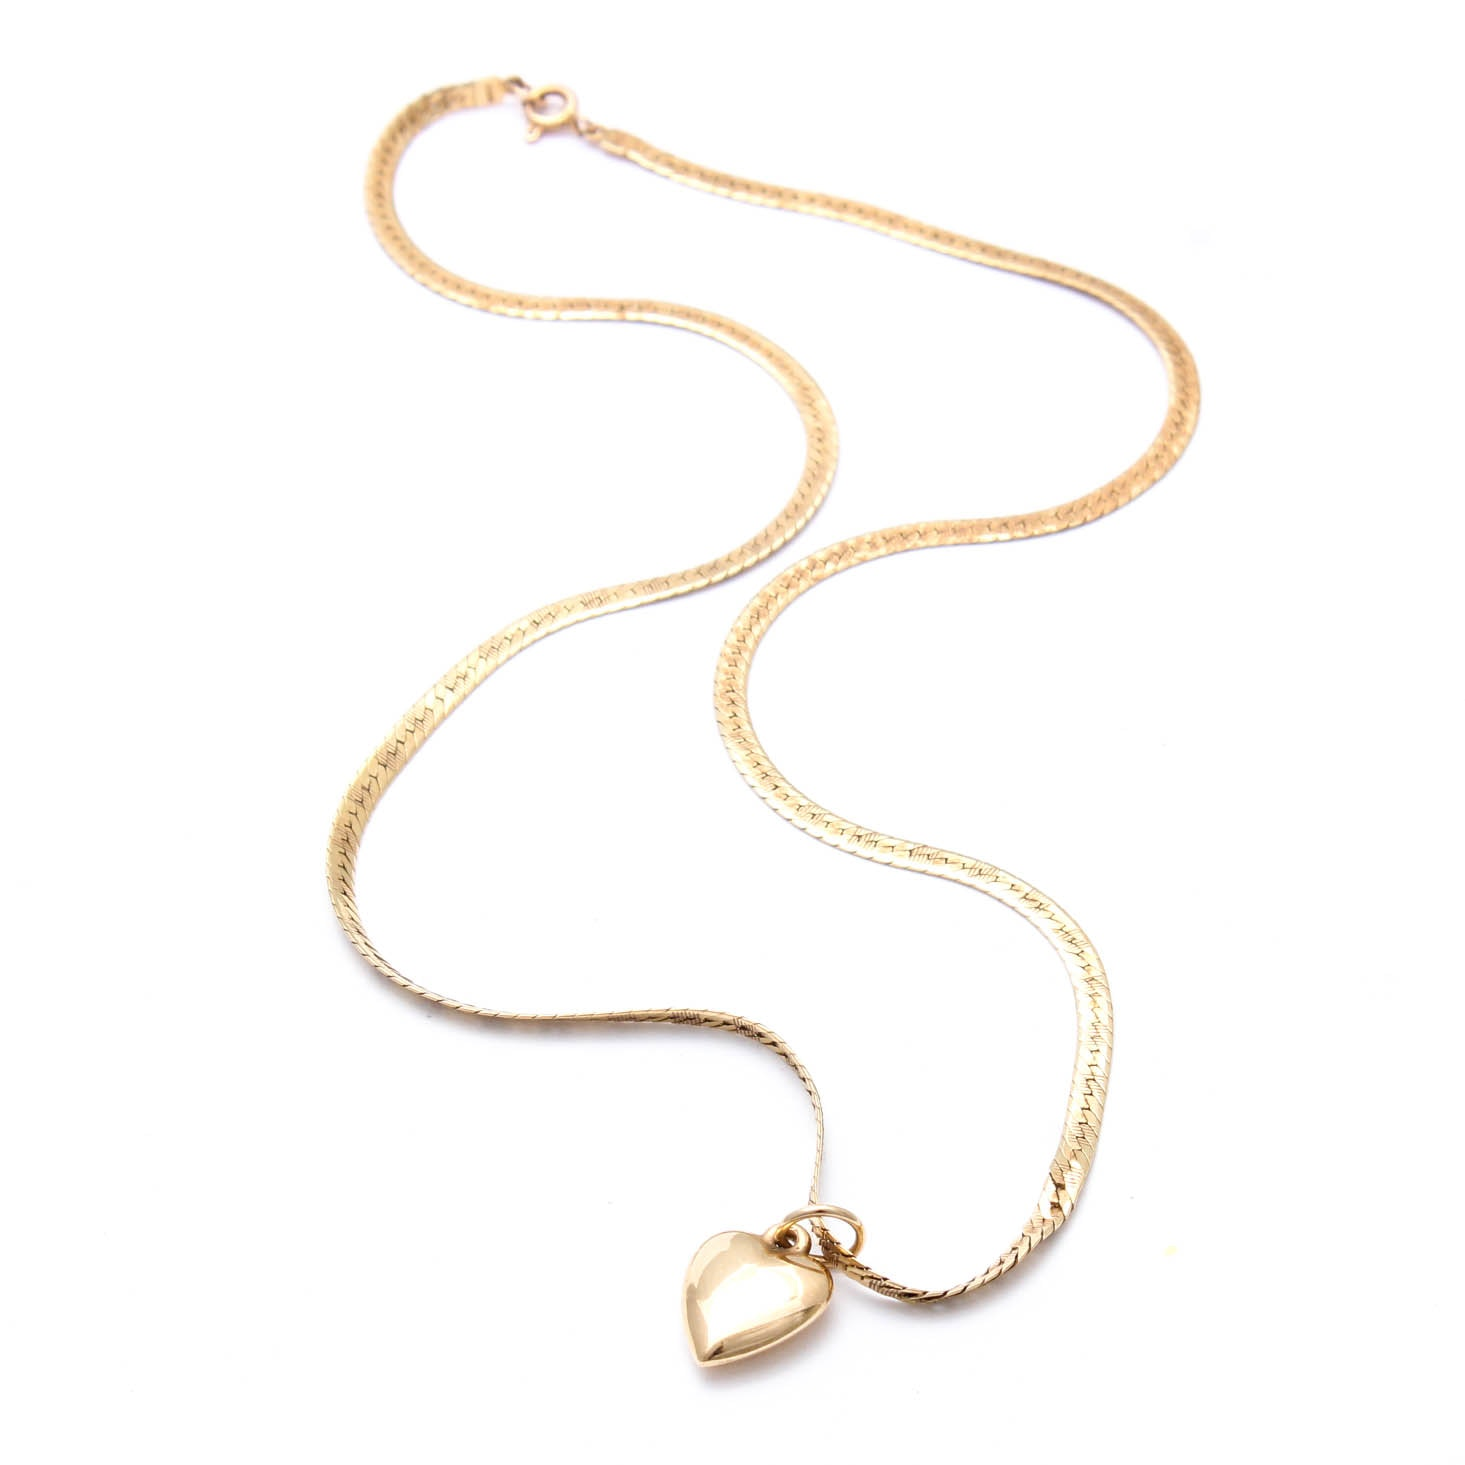 14K Yellow Gold Necklace with Pendant